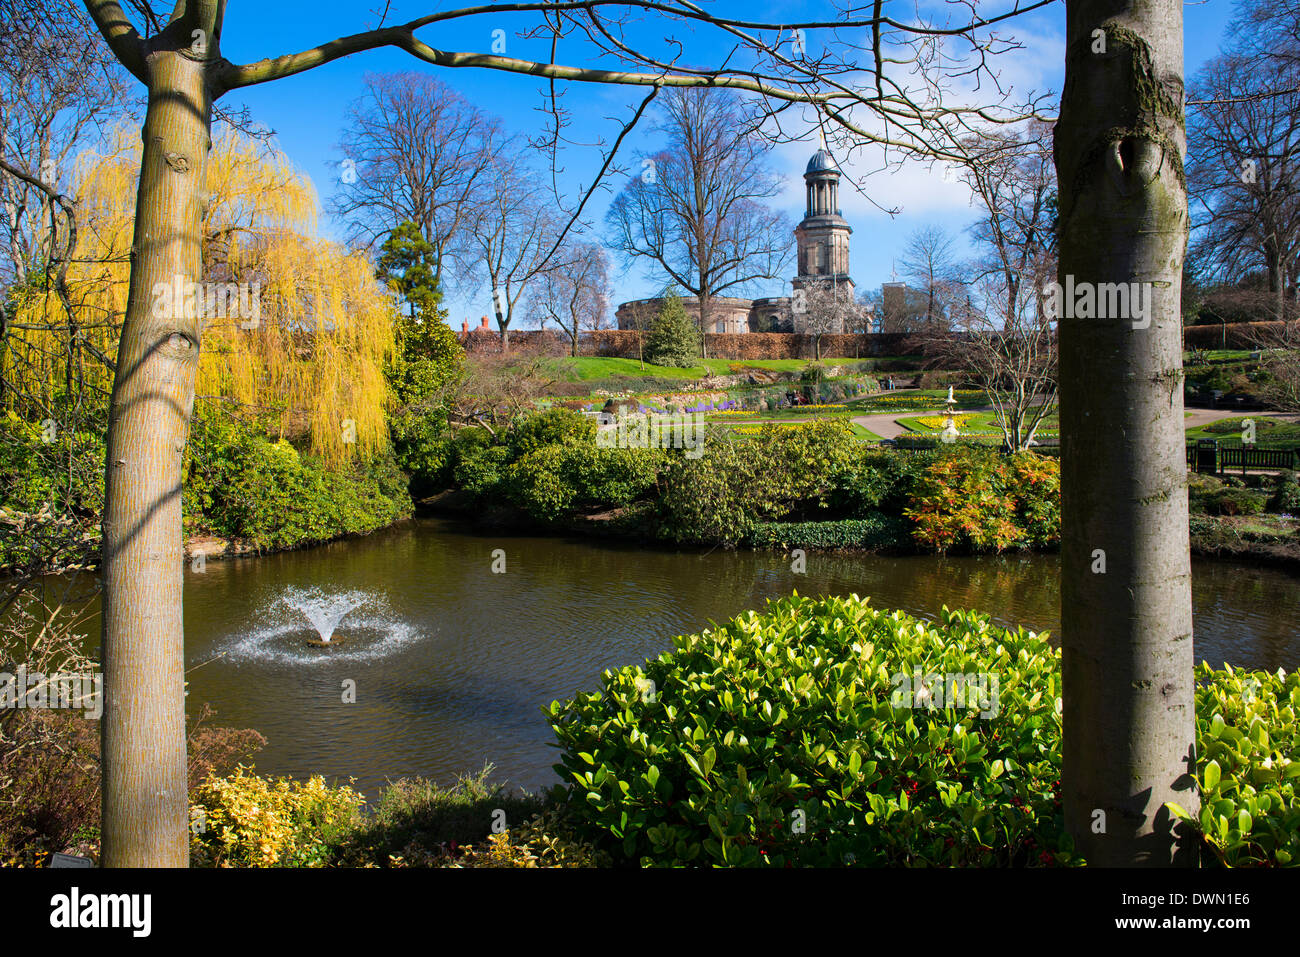 The Dingle, a garden within The Quarry, and St Chad's, Shrewsbury, Shropshire. - Stock Image